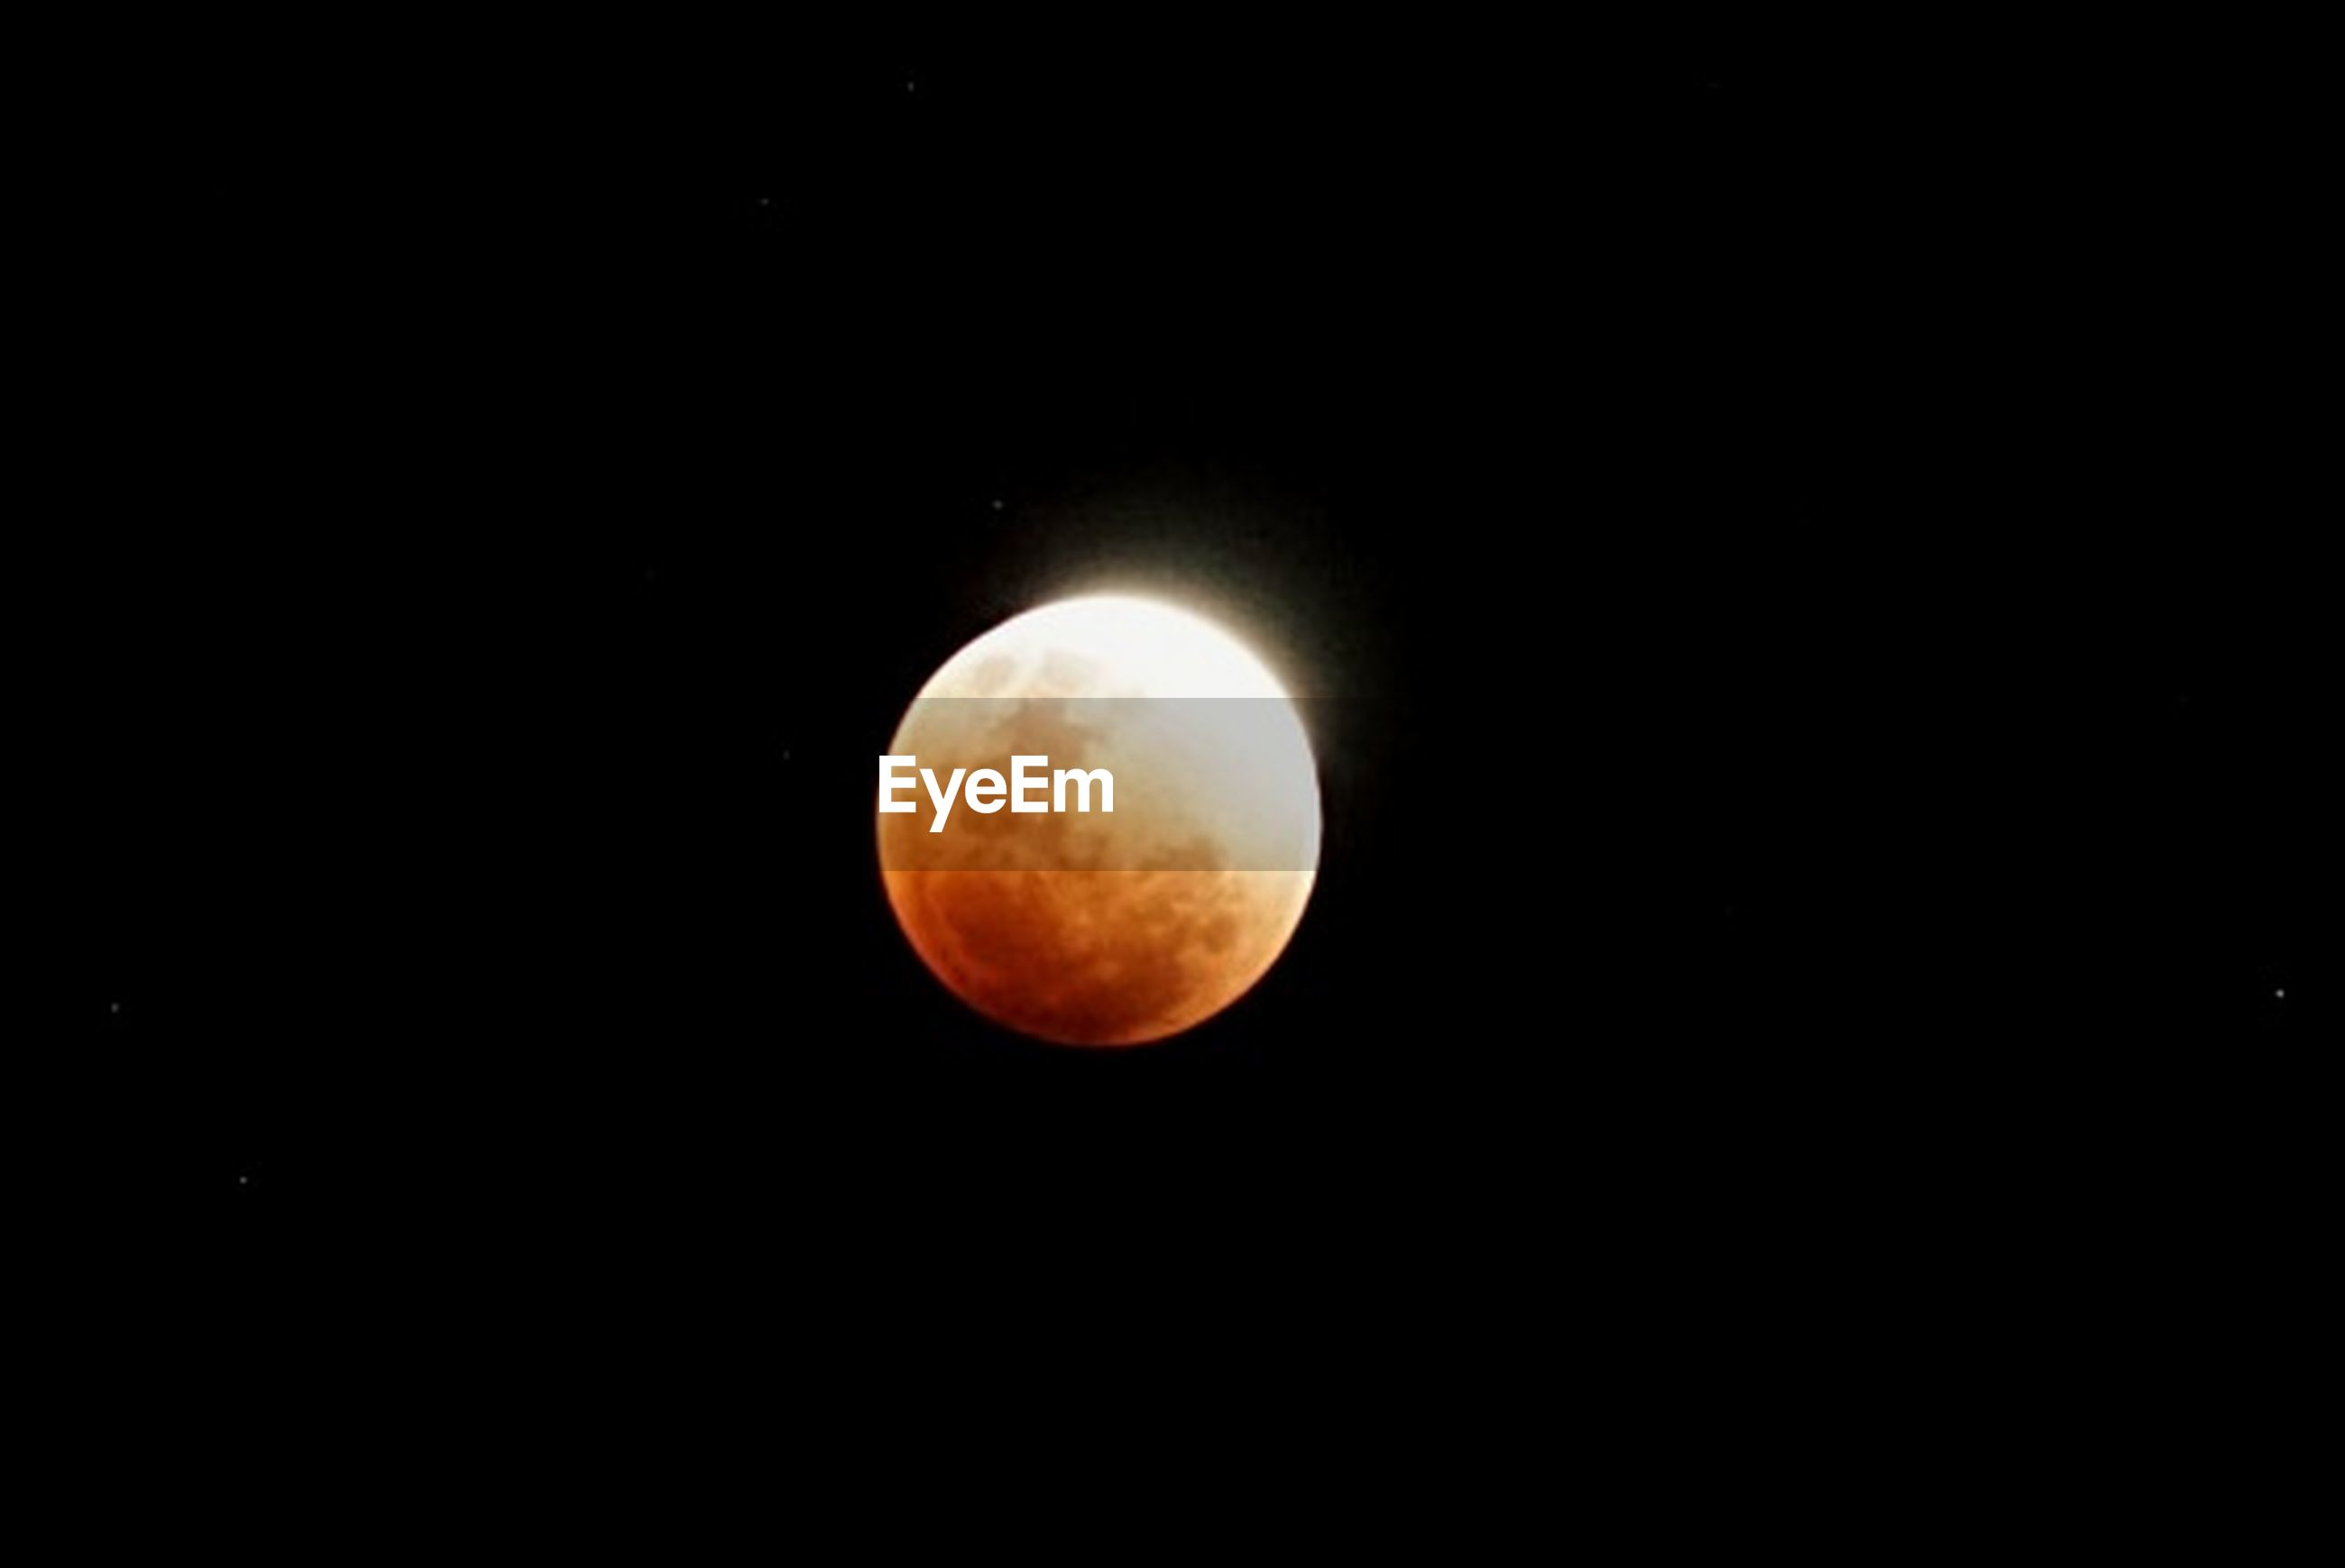 moon, astronomy, night, beauty in nature, eclipse, nature, copy space, planetary moon, orange color, tranquil scene, scenics, moon surface, no people, tranquility, outdoors, low angle view, half moon, space, clear sky, crescent, sky, close-up